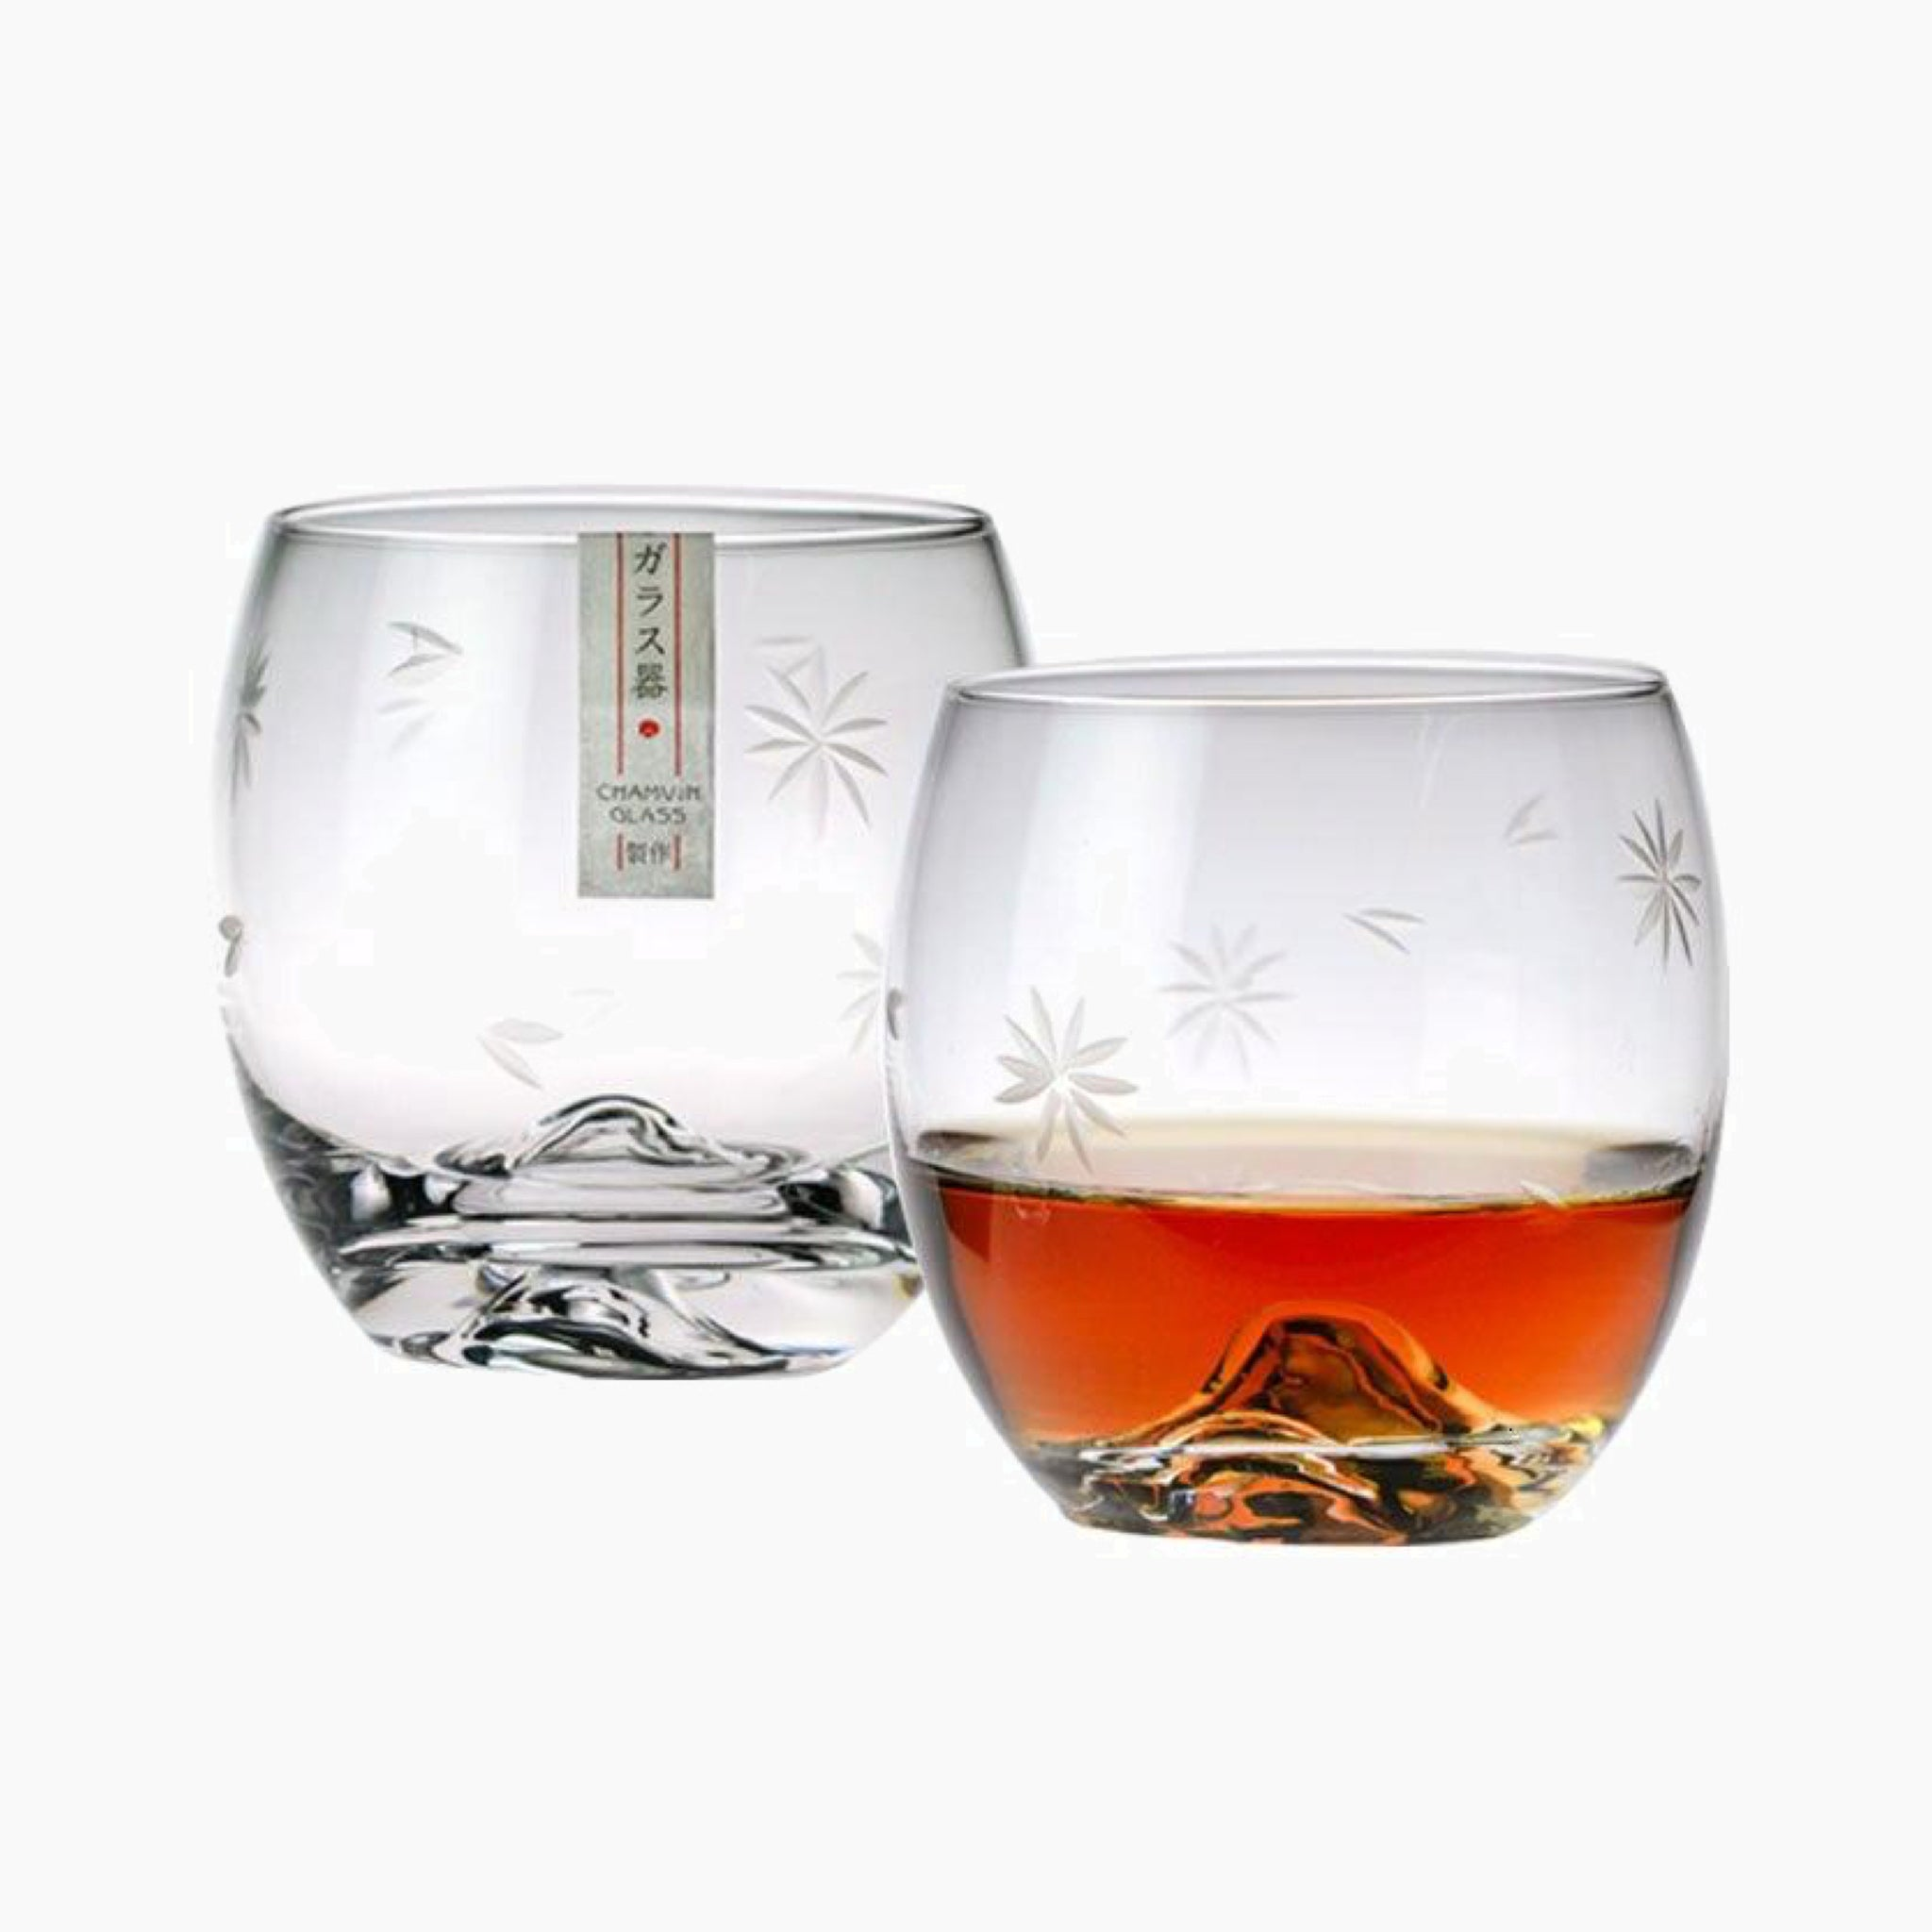 Japanese Mt. Fuji Whisky Glass Cup Ice Flower Design Transparent Lead-free Crystal Creative Brandy Rum Liquor Beer Glasses Japan Glassware Drinkware Trend